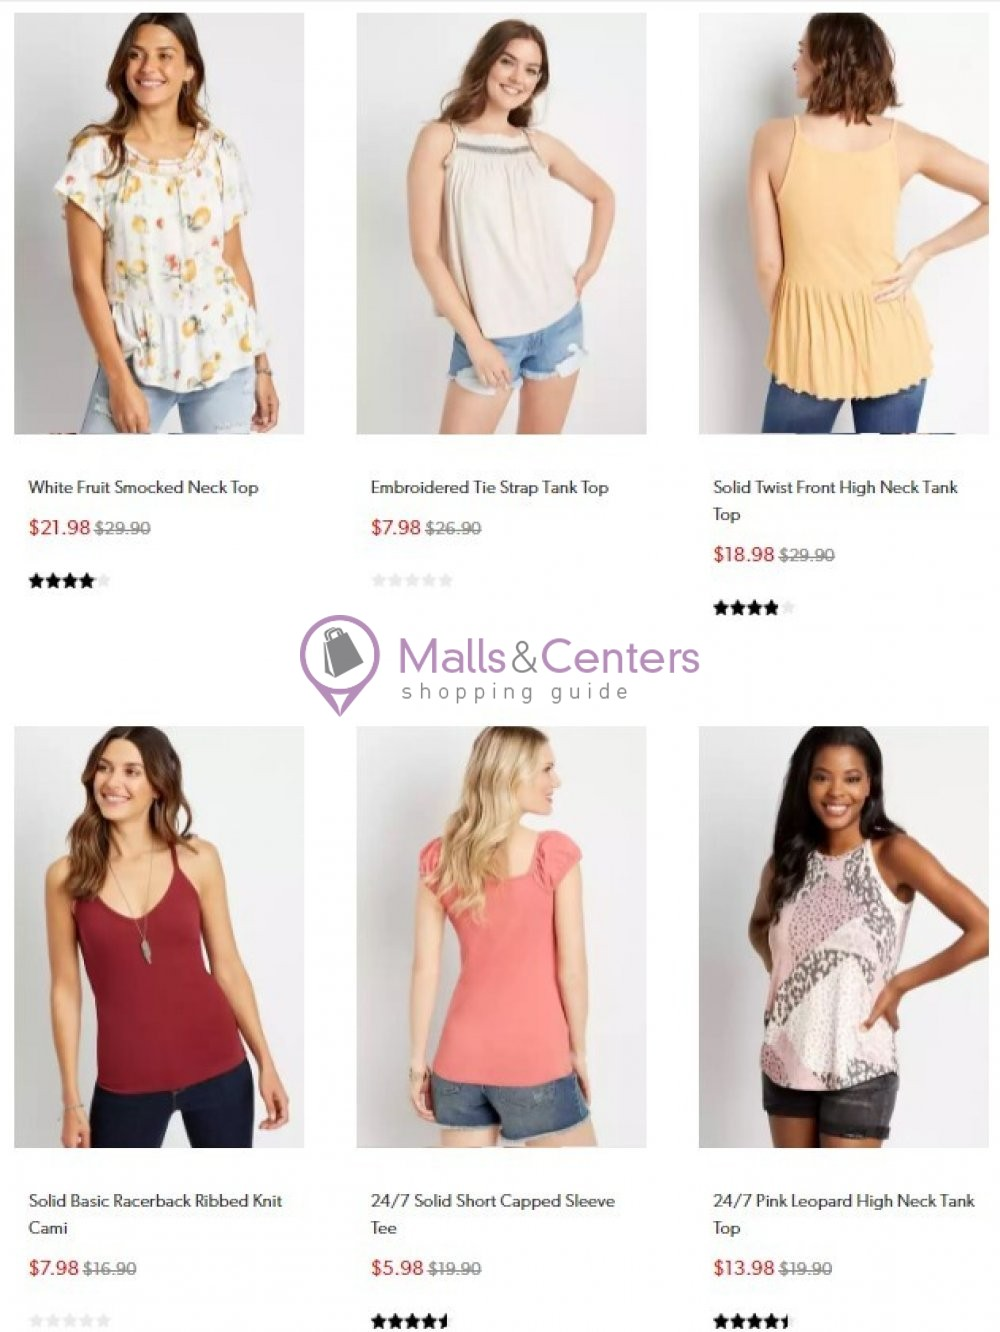 weekly ads maurices - page 1 - mallscenters.com